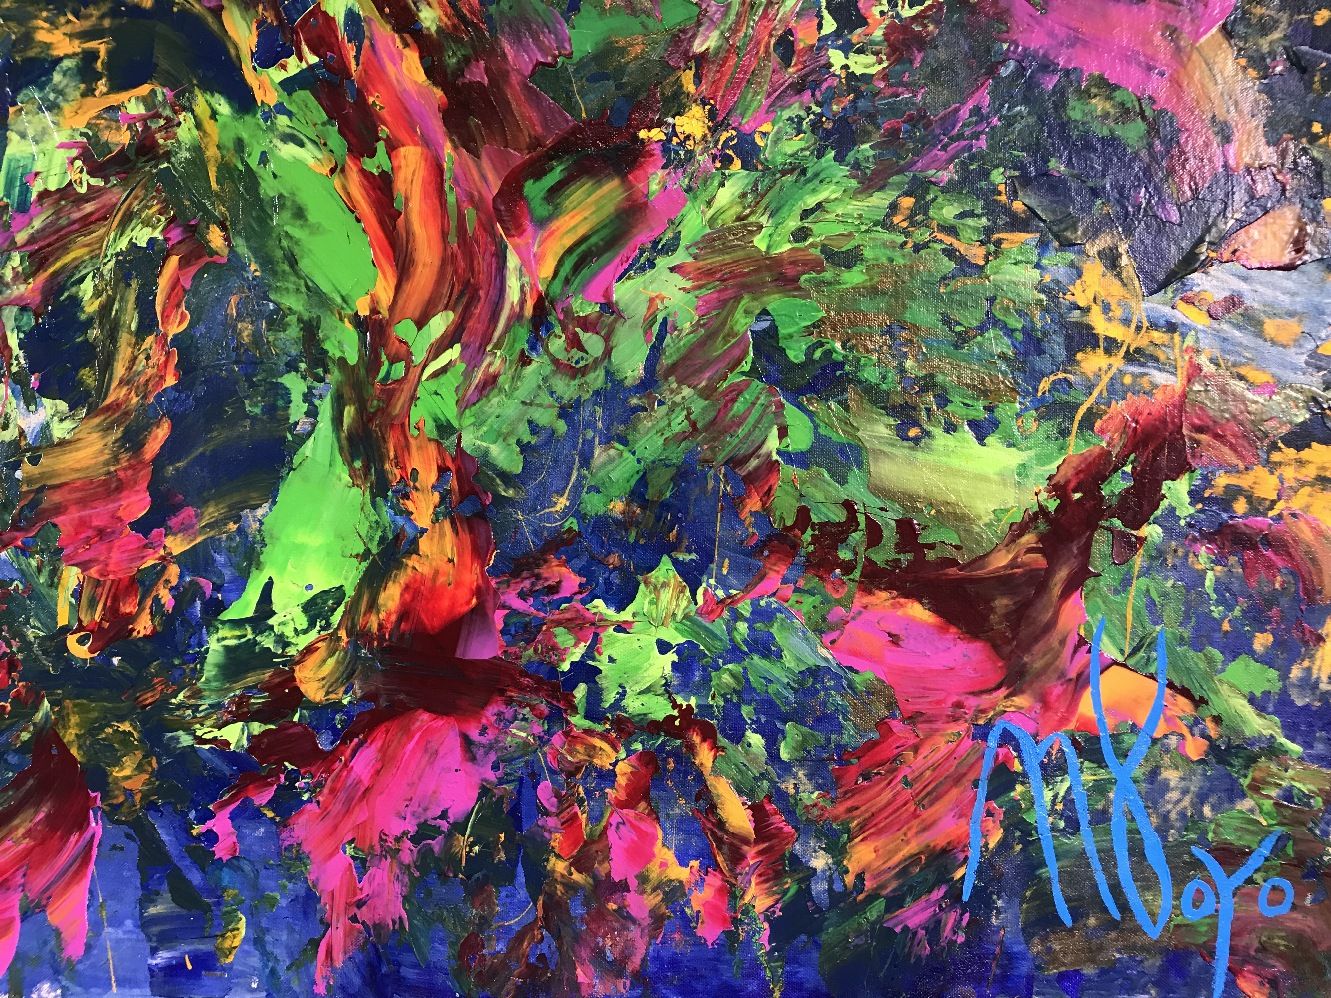 A garden high above (2018) ABSTRACT ART Acrylic painting by Nestor Toro